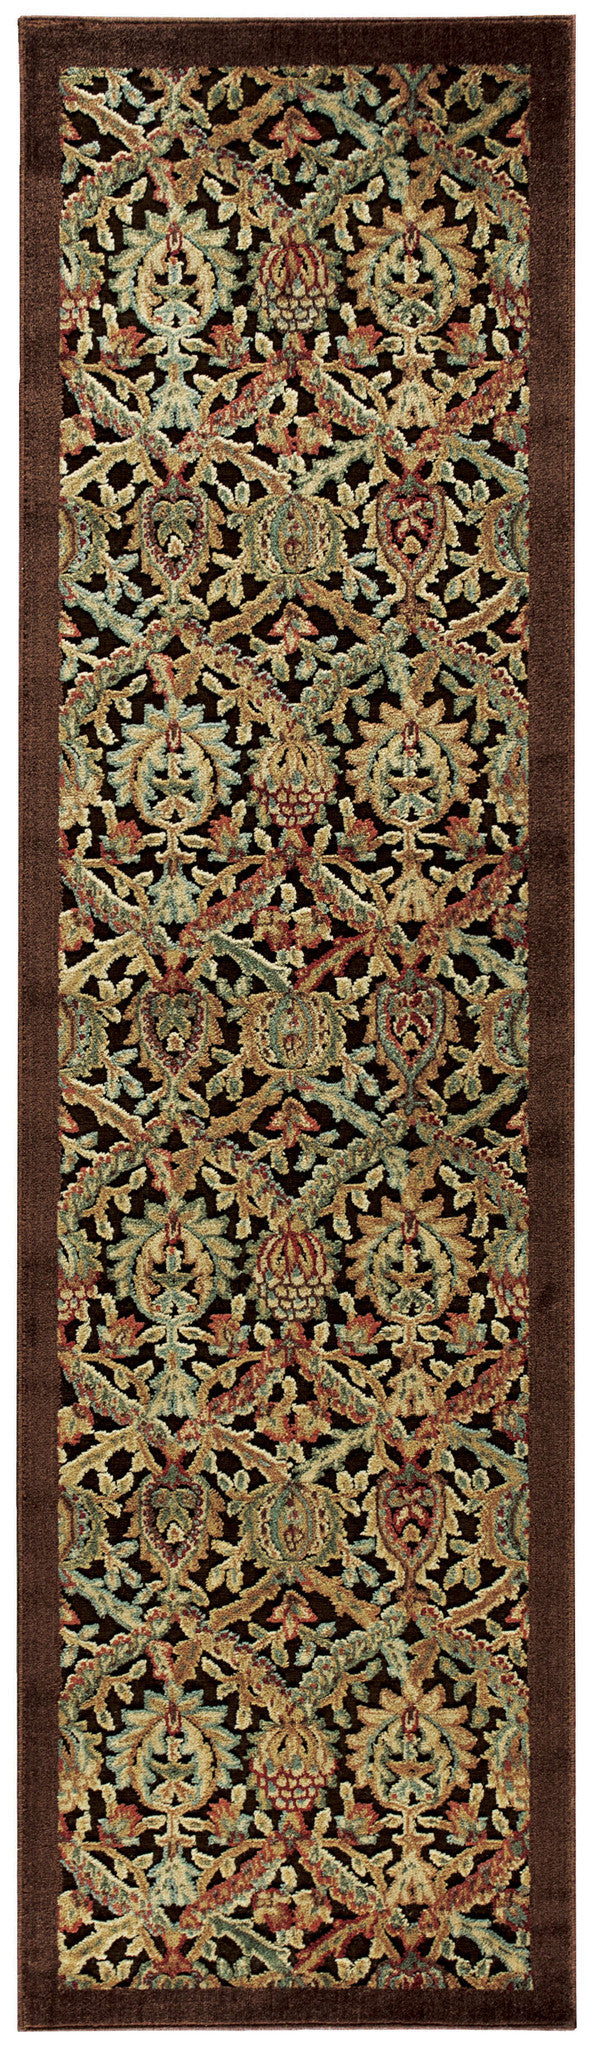 Nourison Graphic Illusions Chocolate Area Rug GIL15 CHO